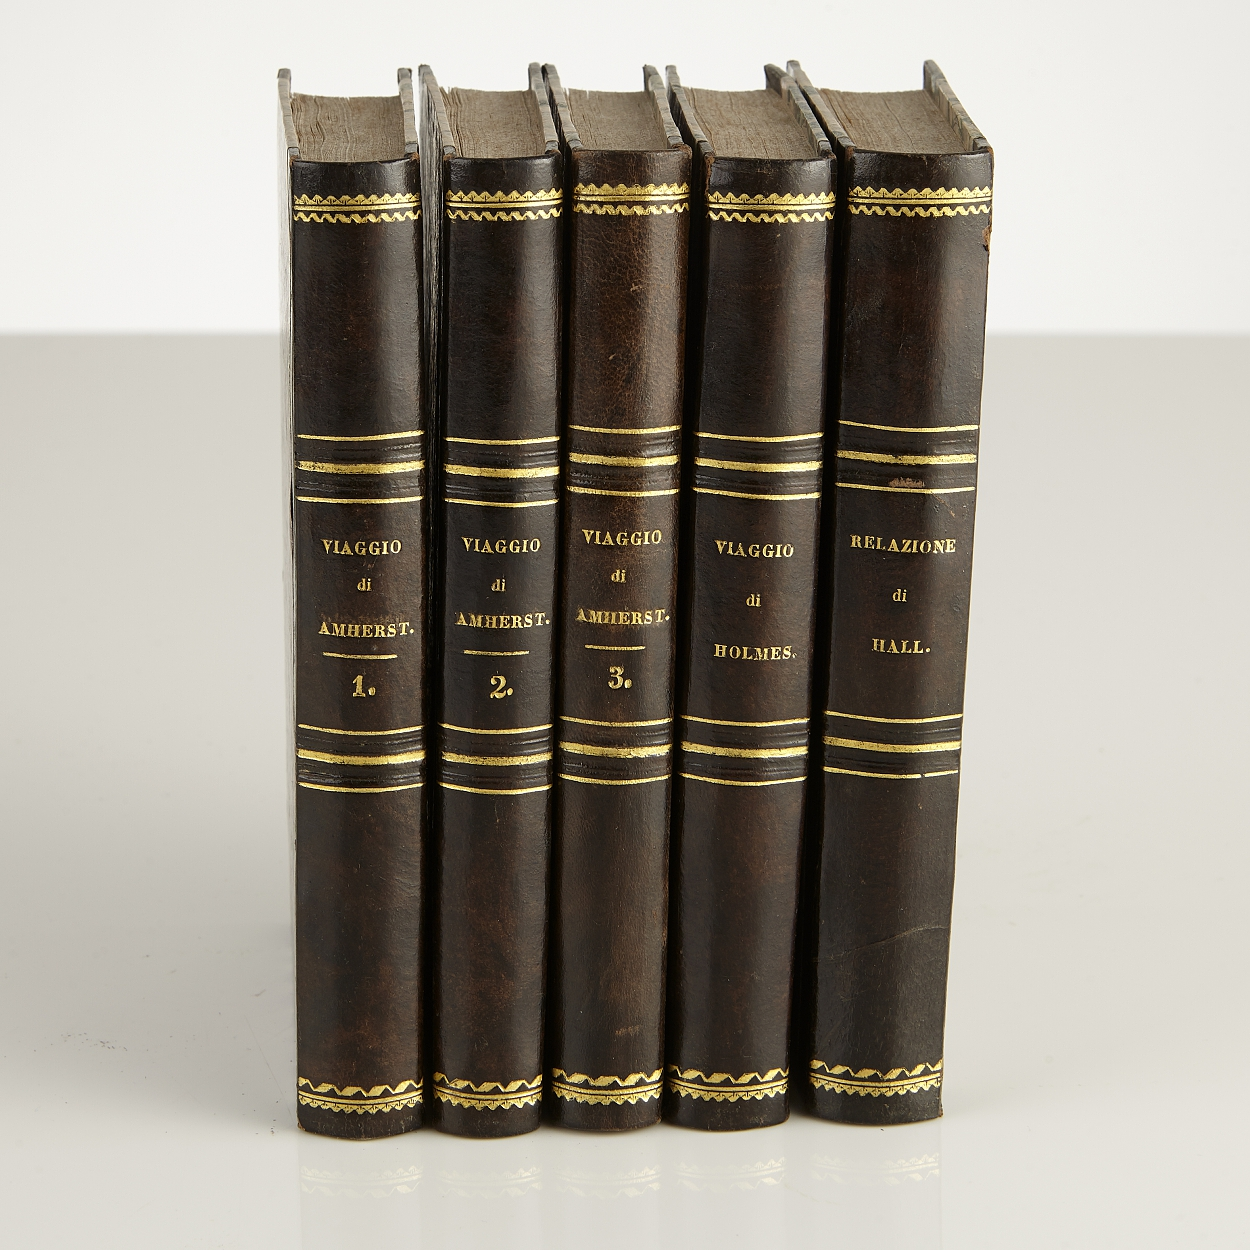 Travels by Holmes, Ellis, and Hall 5 vols.